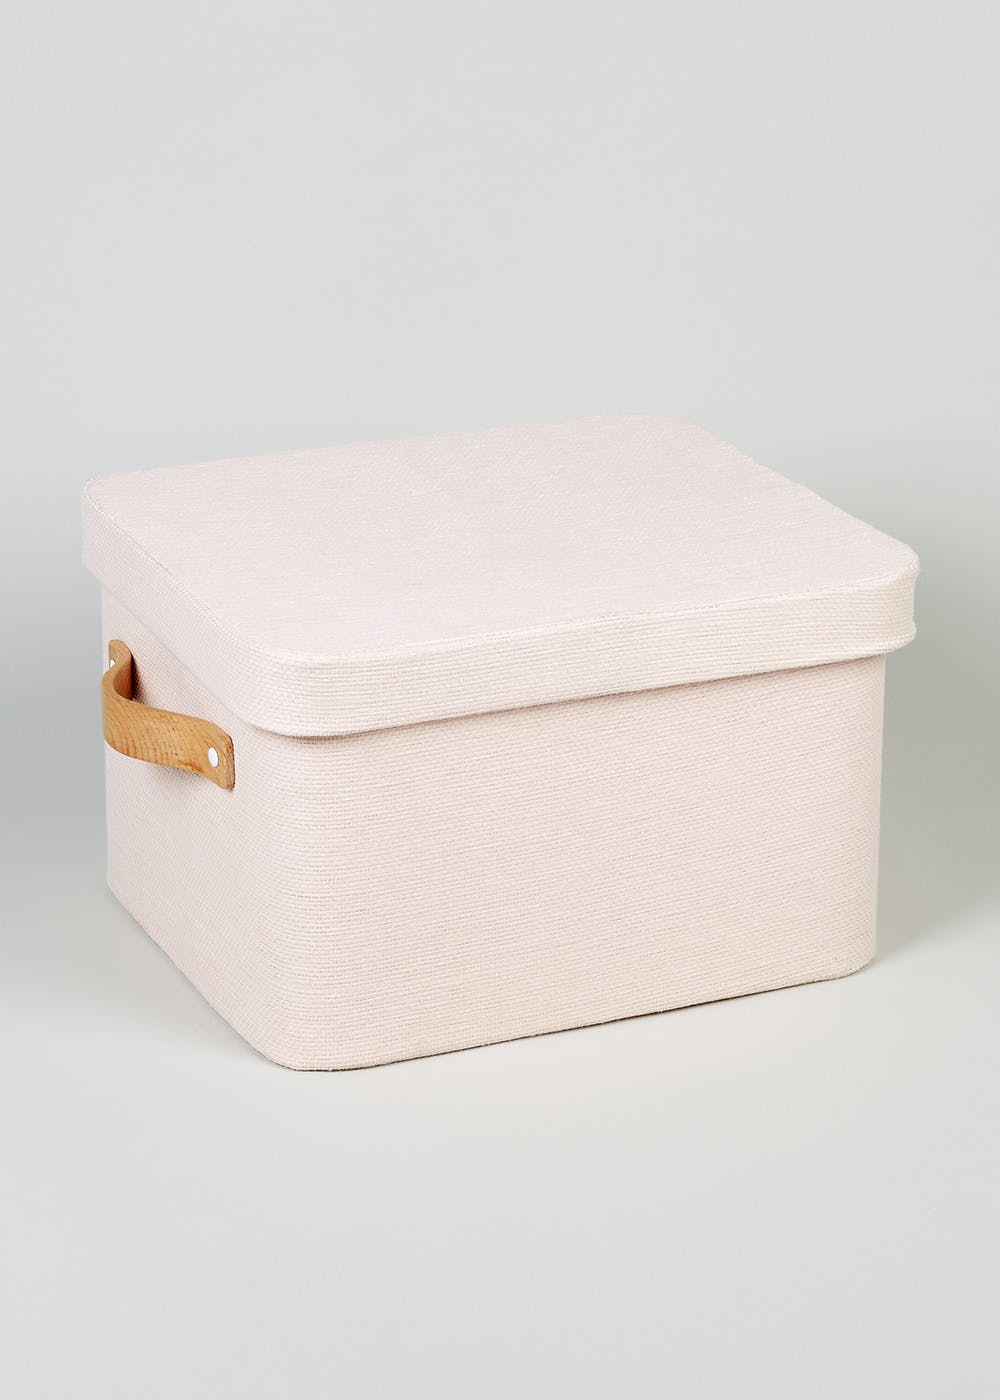 Fabric Storage Box 35cm X 30cm 21cm